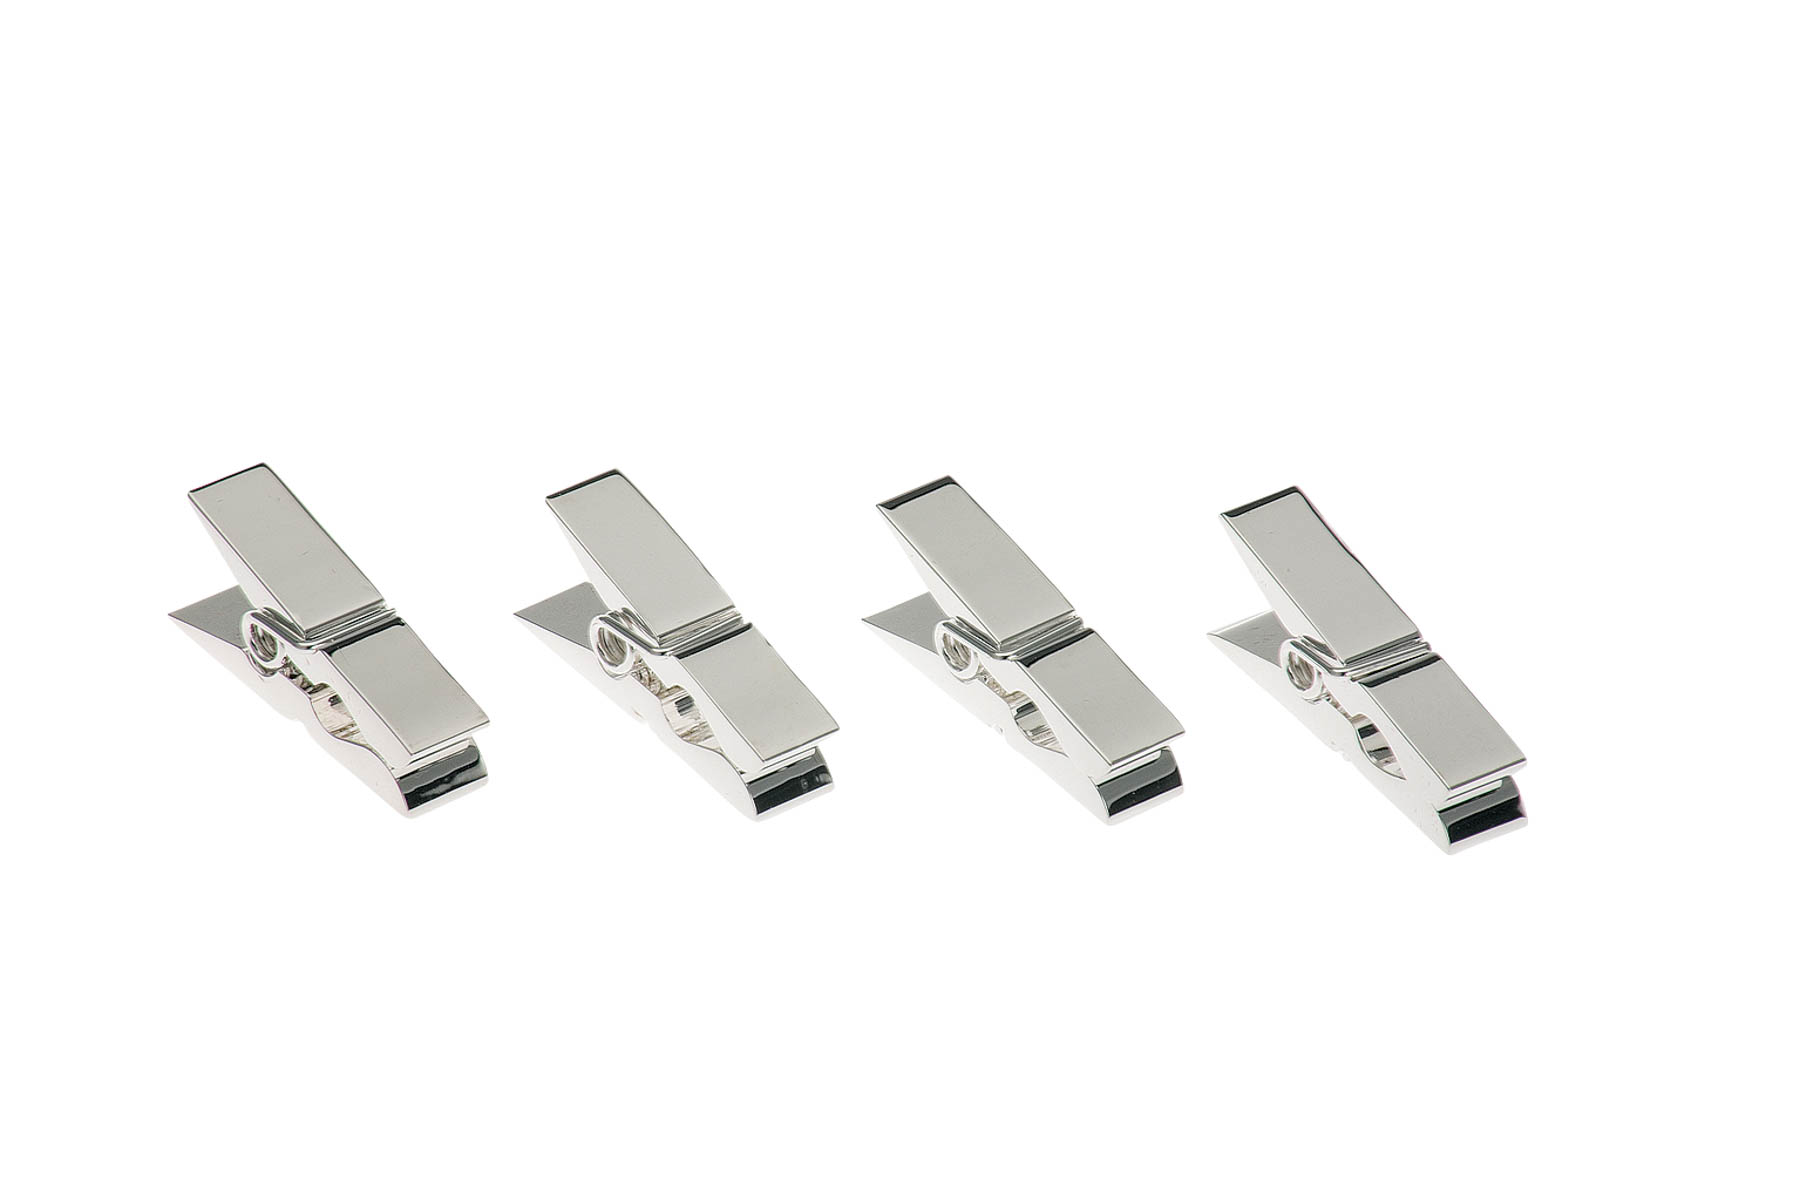 Paper-/Napkin-Clip Small Set of 4